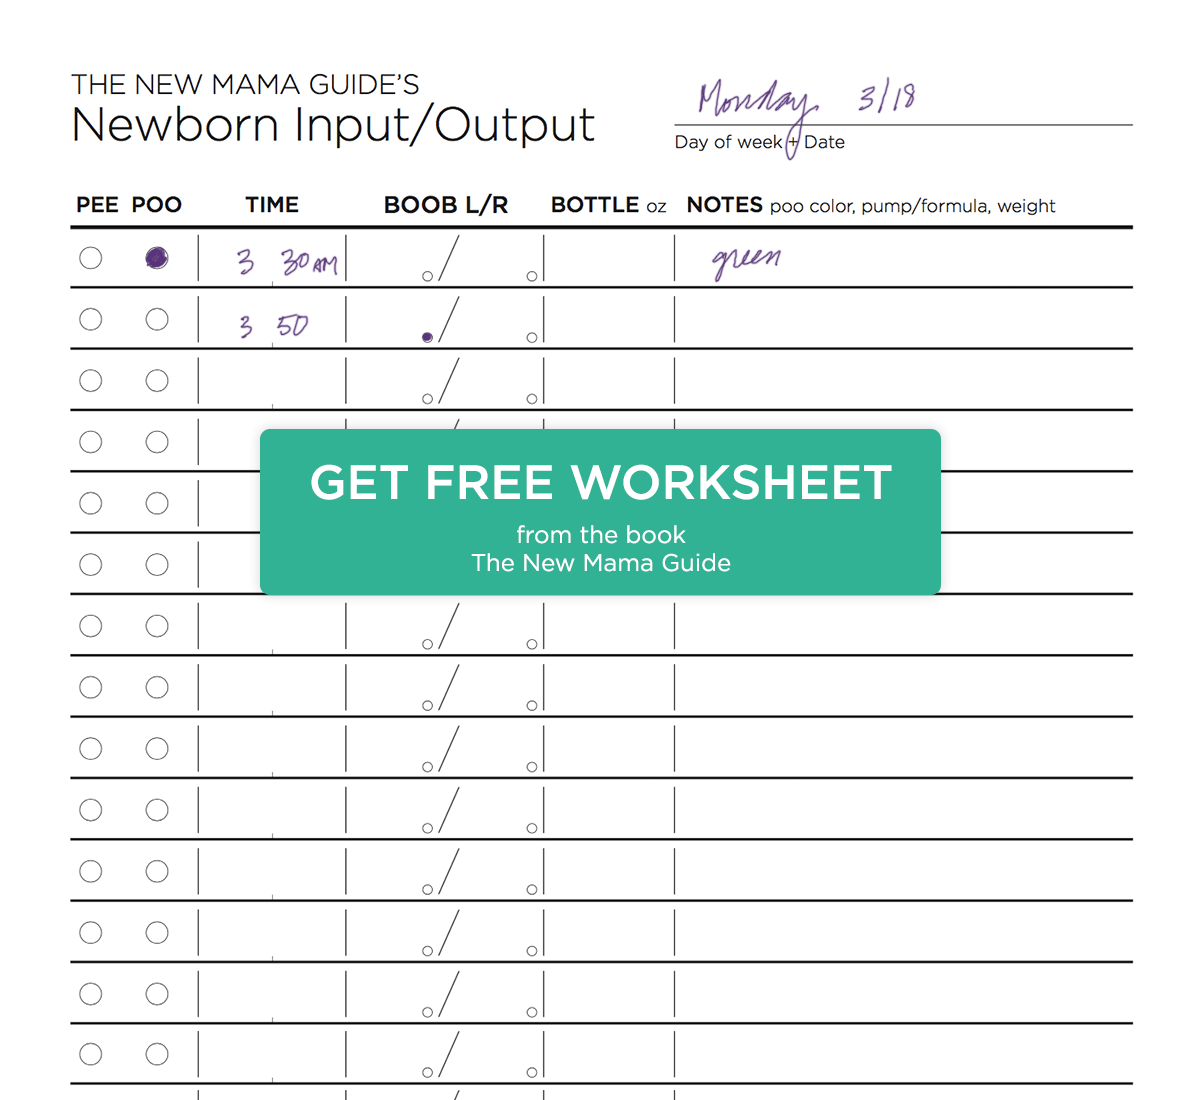 Newborn Input Output Worksheet New Mama Guide